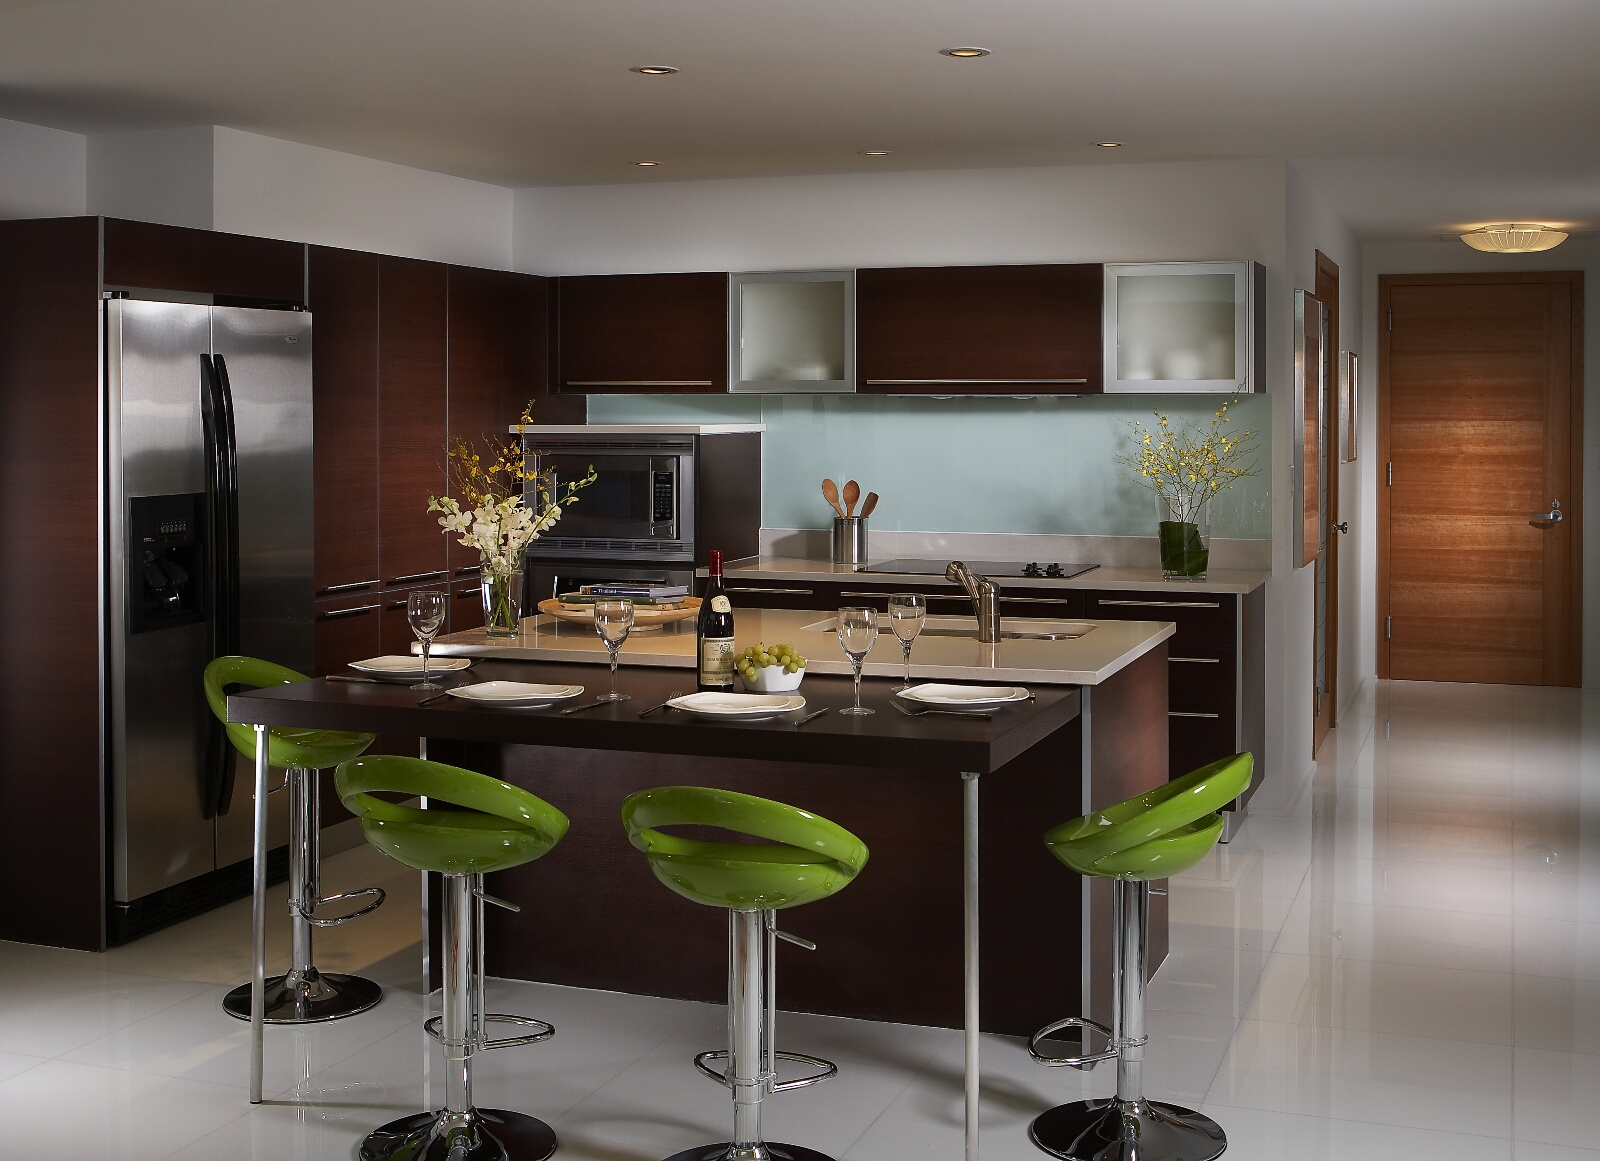 Kitchen Interior Design Services Miami Florida - Interior-designed-kitchens